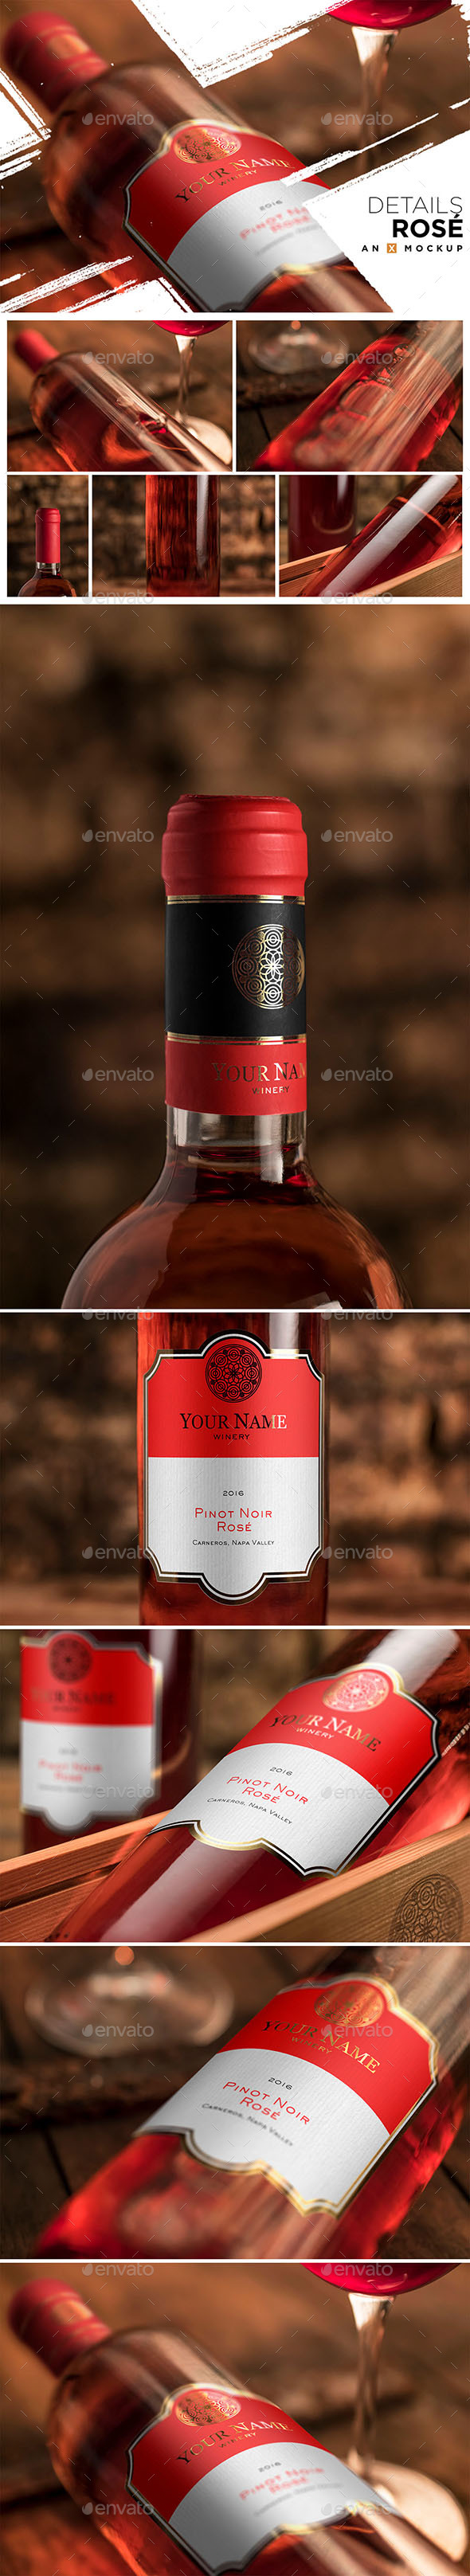 Details Wine Mockup - Bordeaux Rosé - Packaging Product Mock-Ups